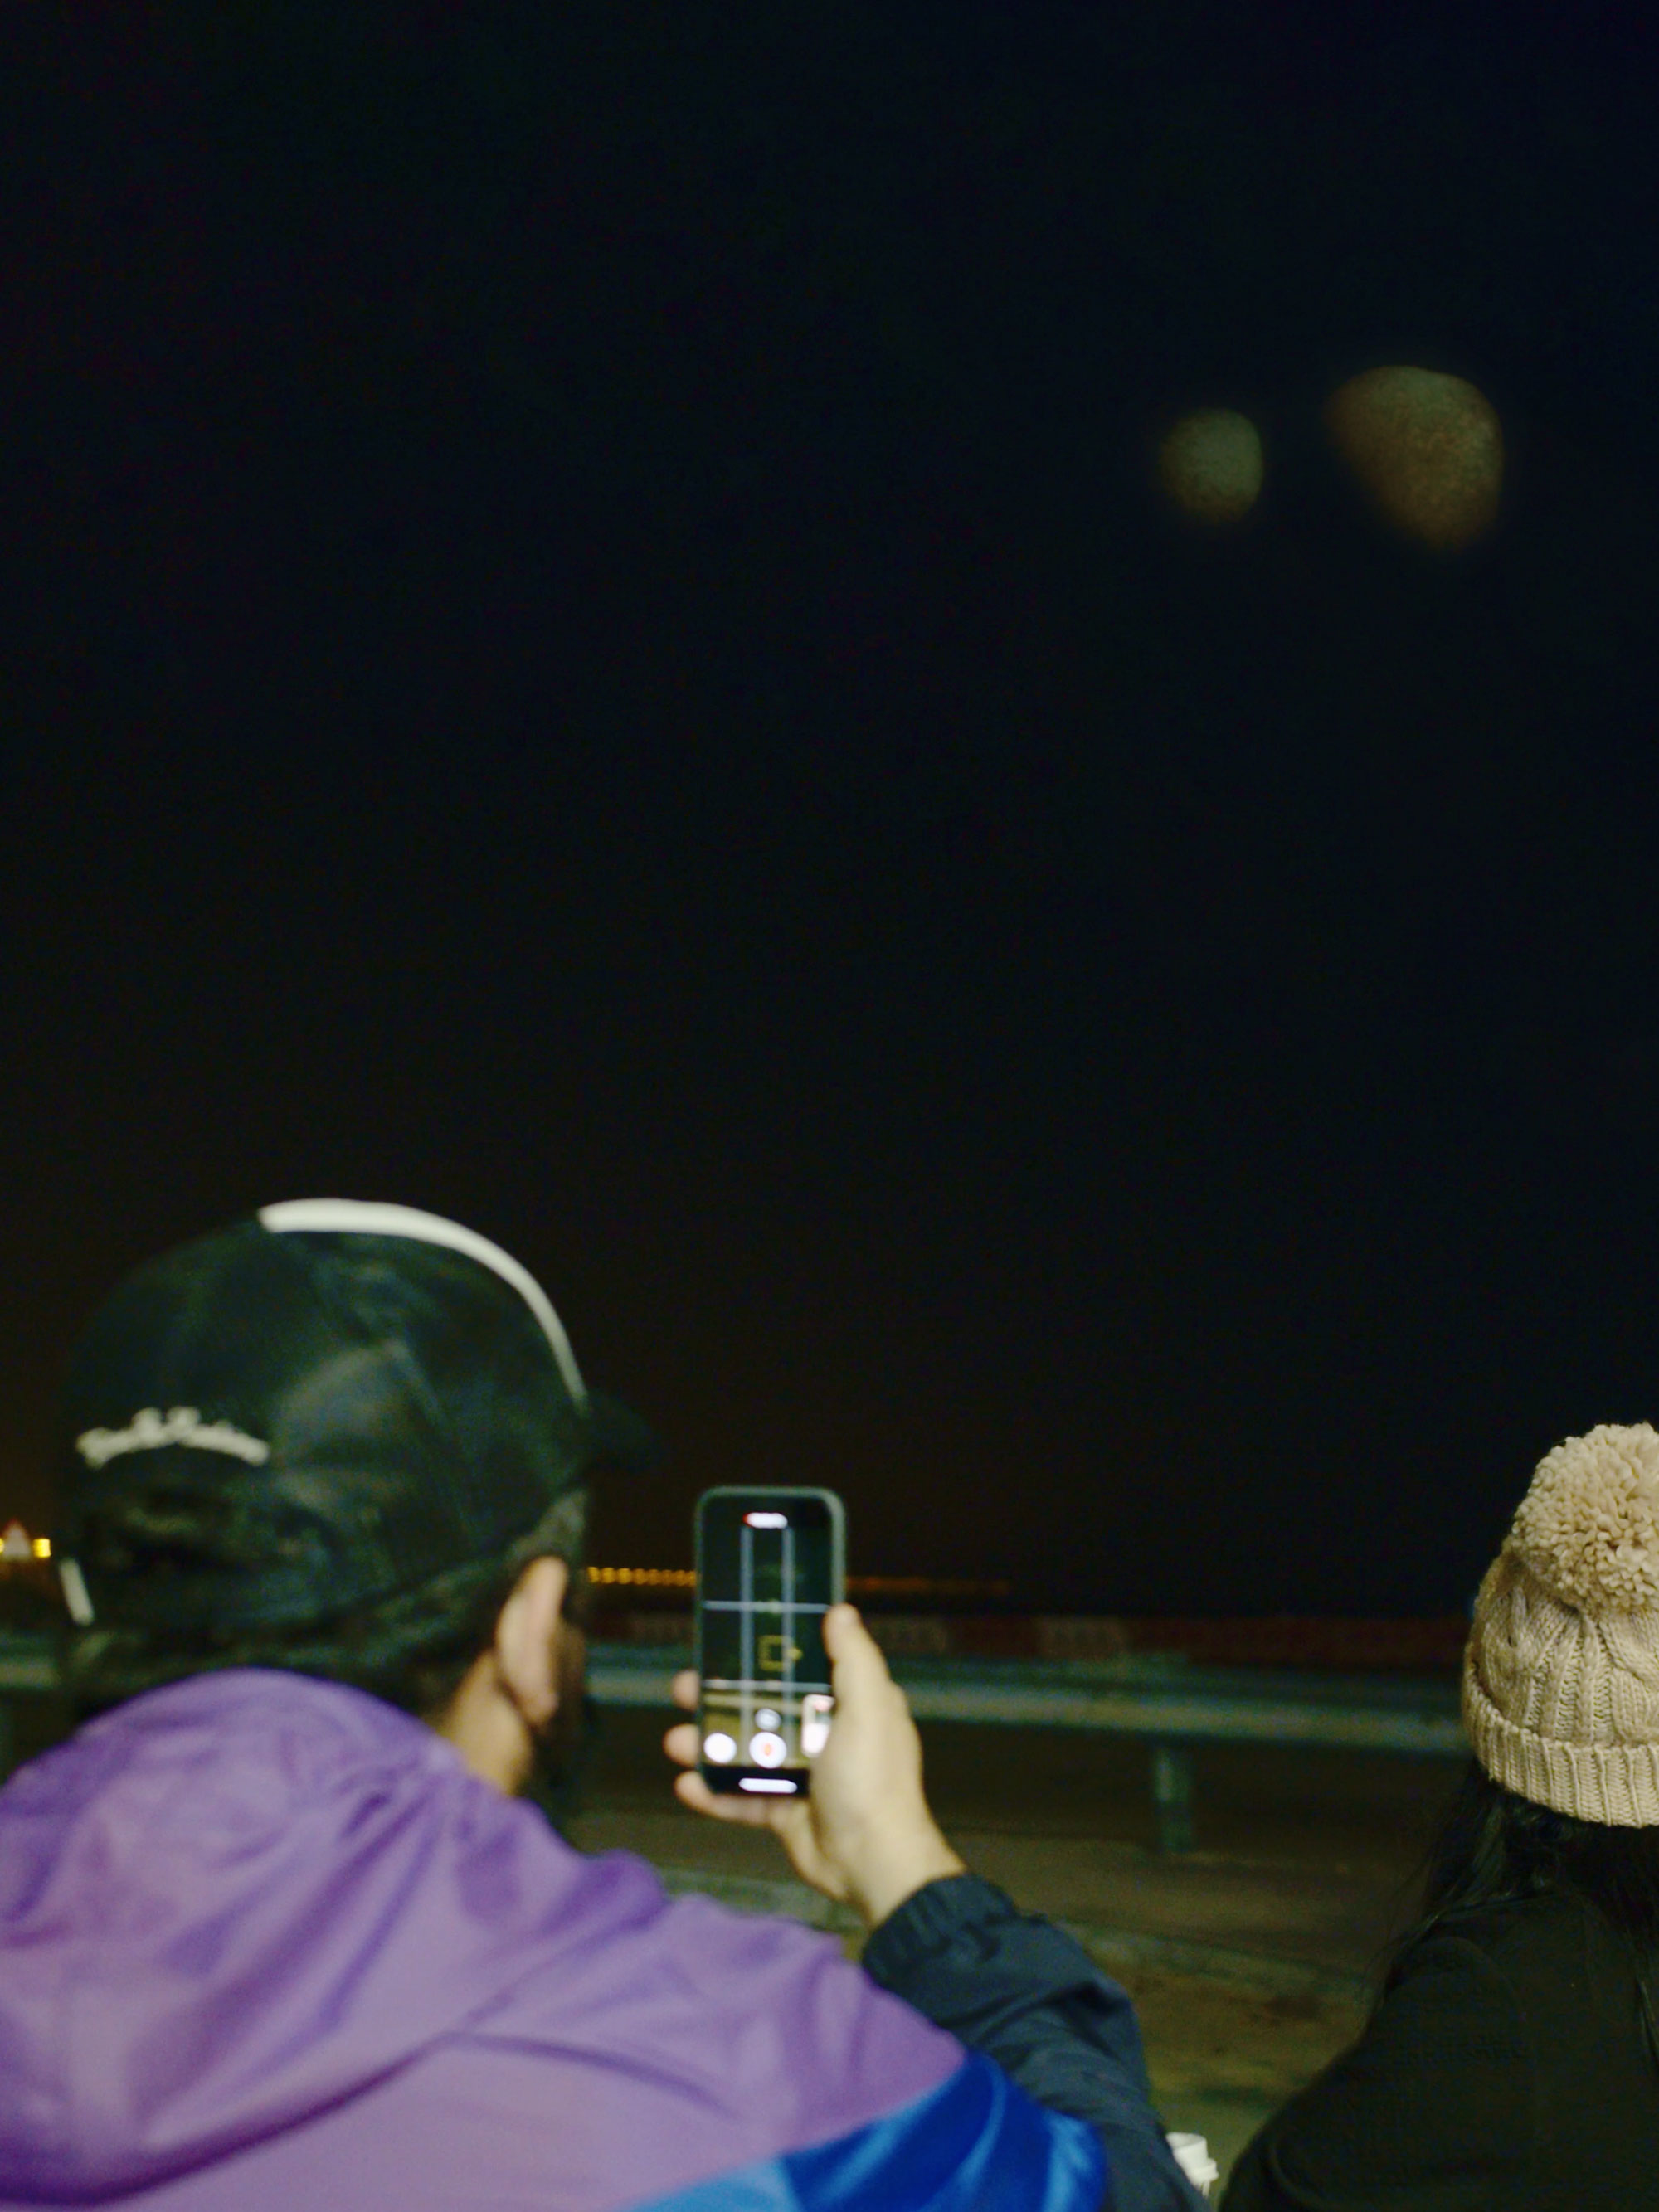 Twin planets appeared in the night sky over Dubai